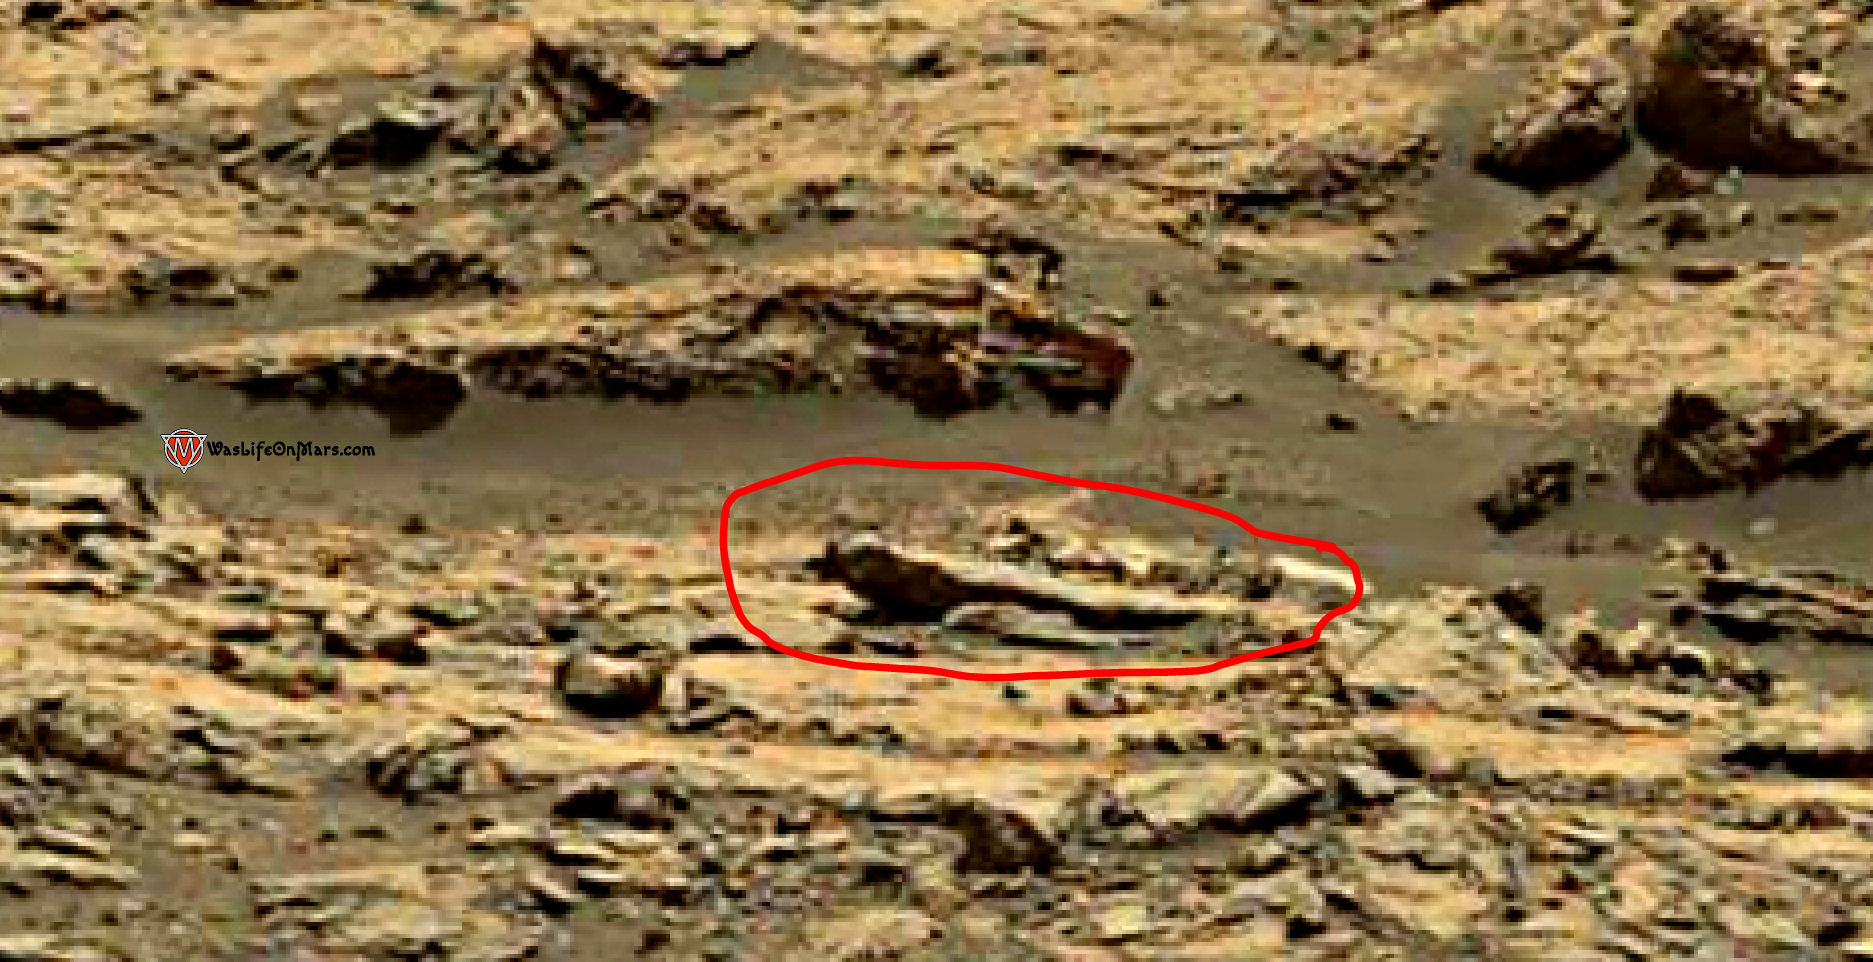 mars sol 1428 anomaly artifacts 3a - the bird - was life on mars